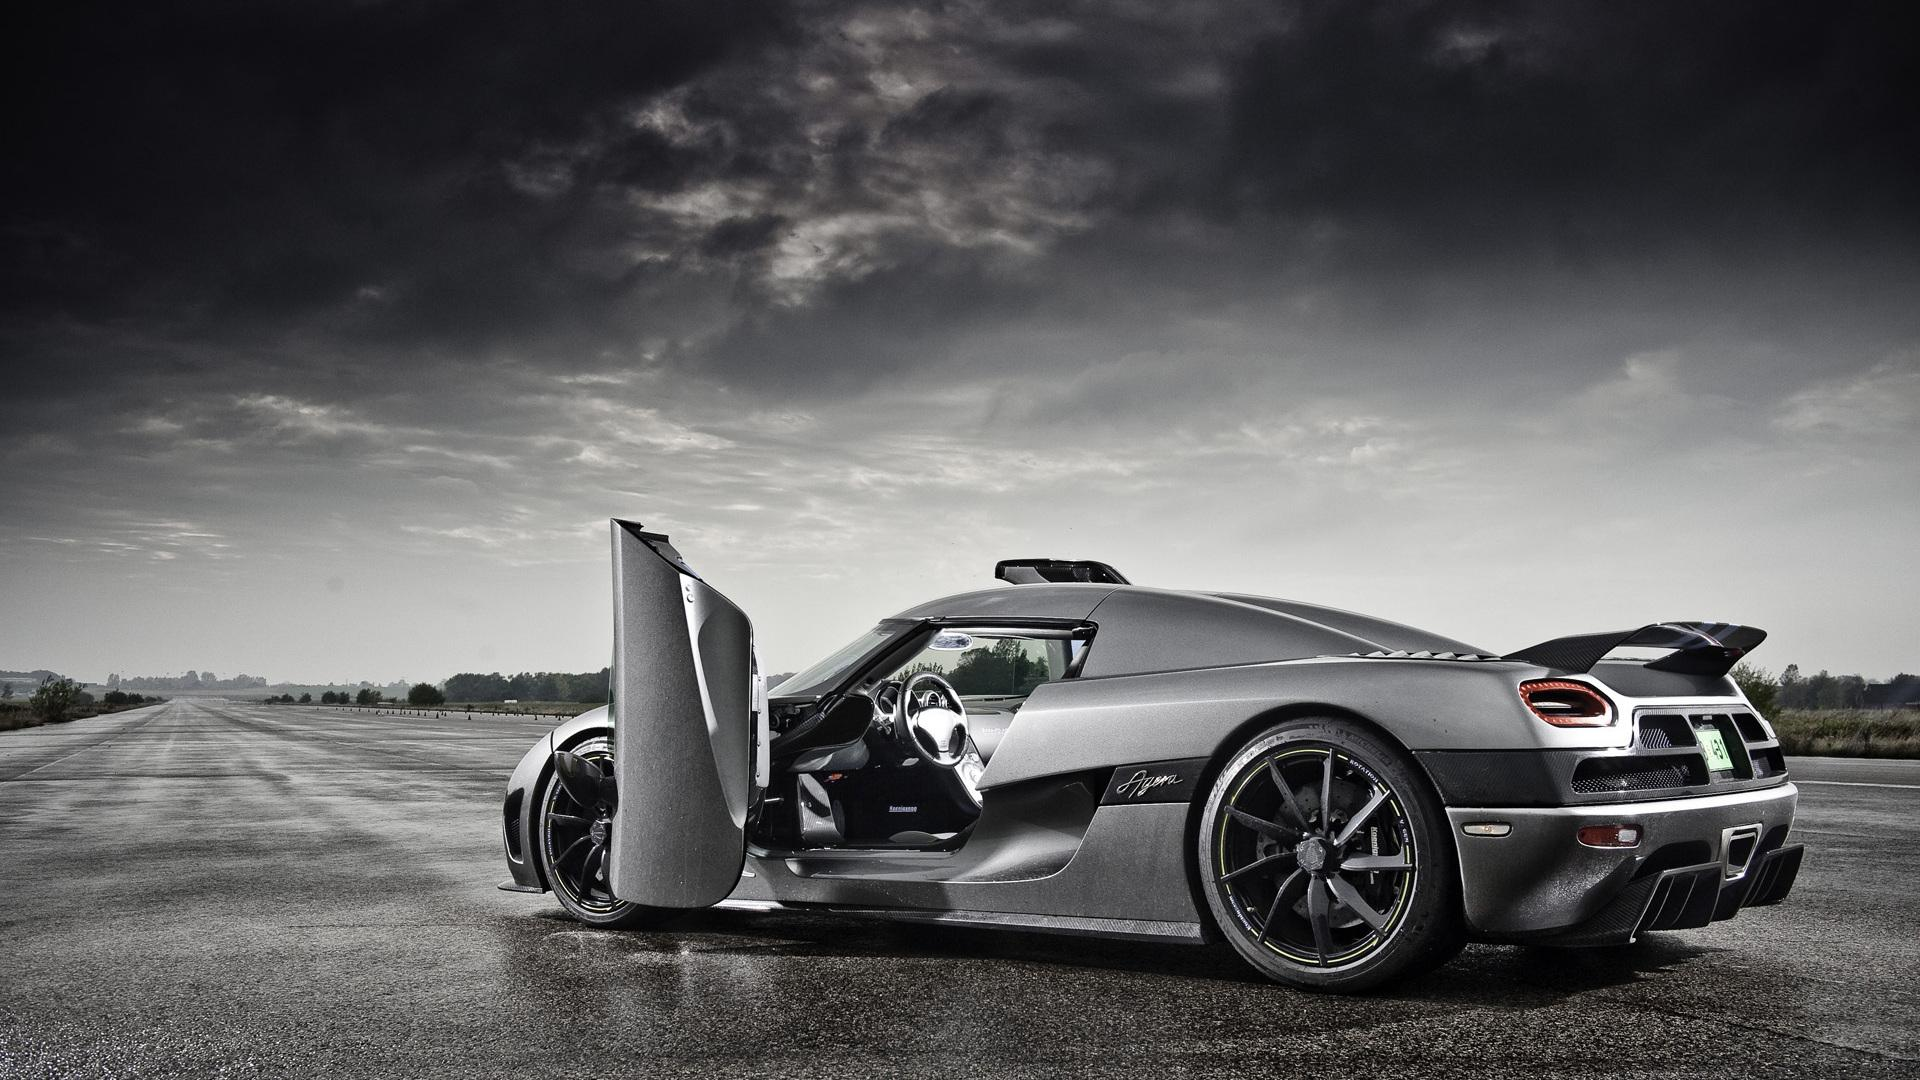 koenigsegg-ccxr-wallpapers-65330-9423842 (1).jpg